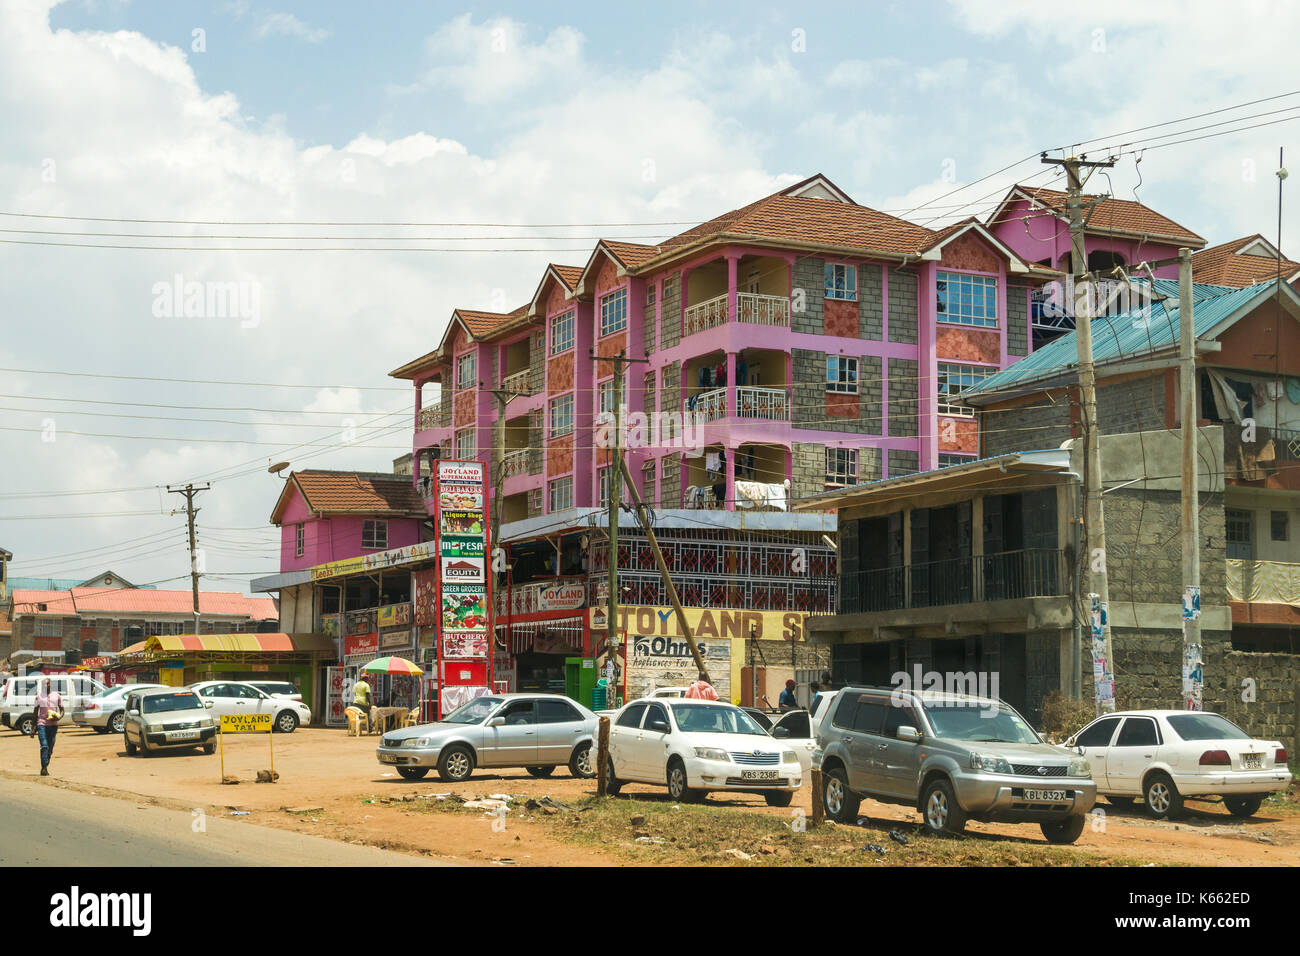 Apartment block with shops and parked vehicles below, Kenya - Stock Image